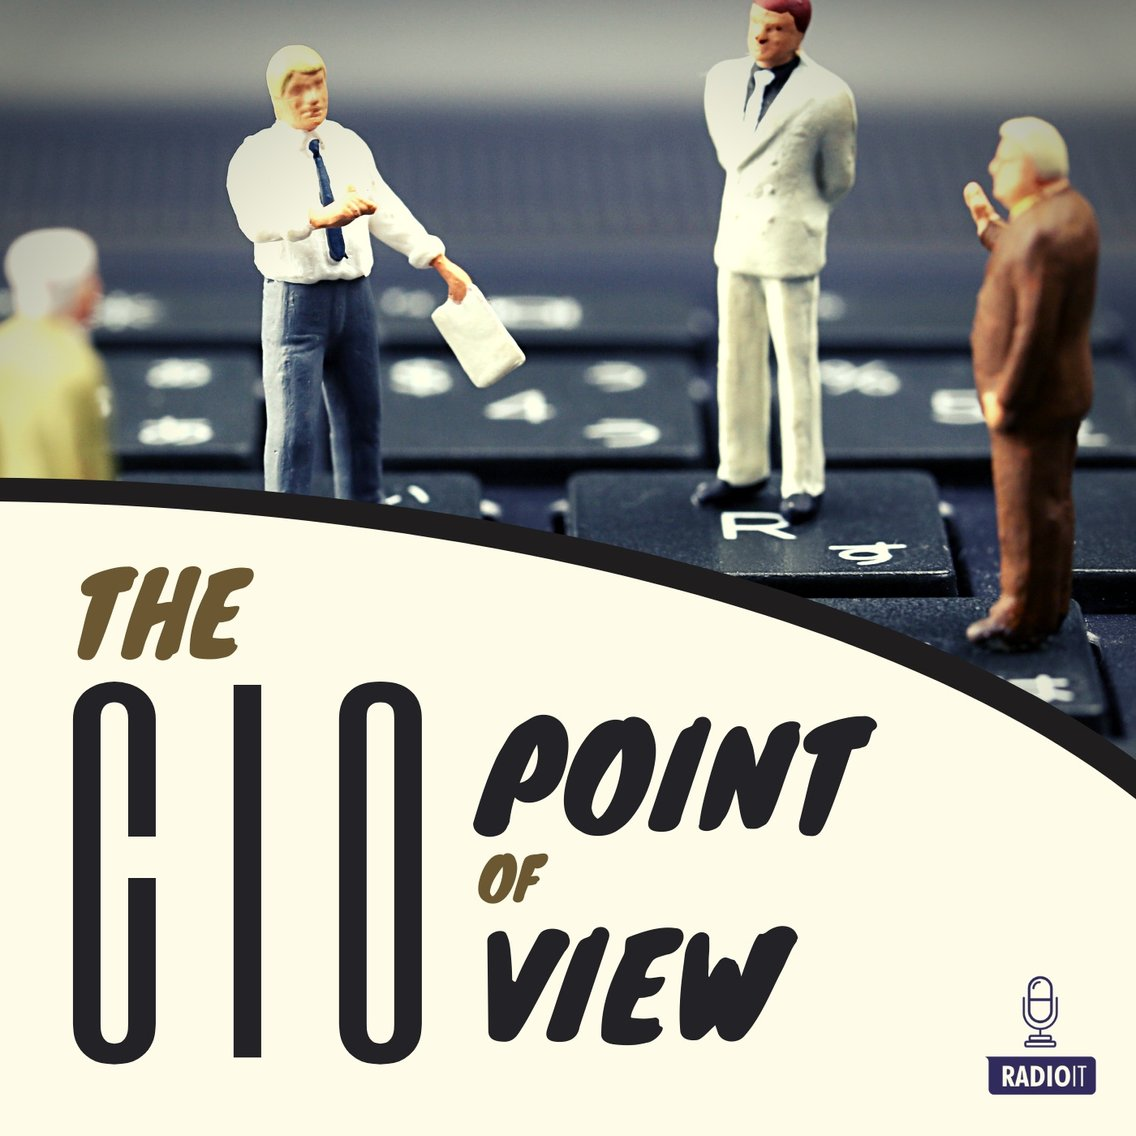 The CIO point of view - Cover Image